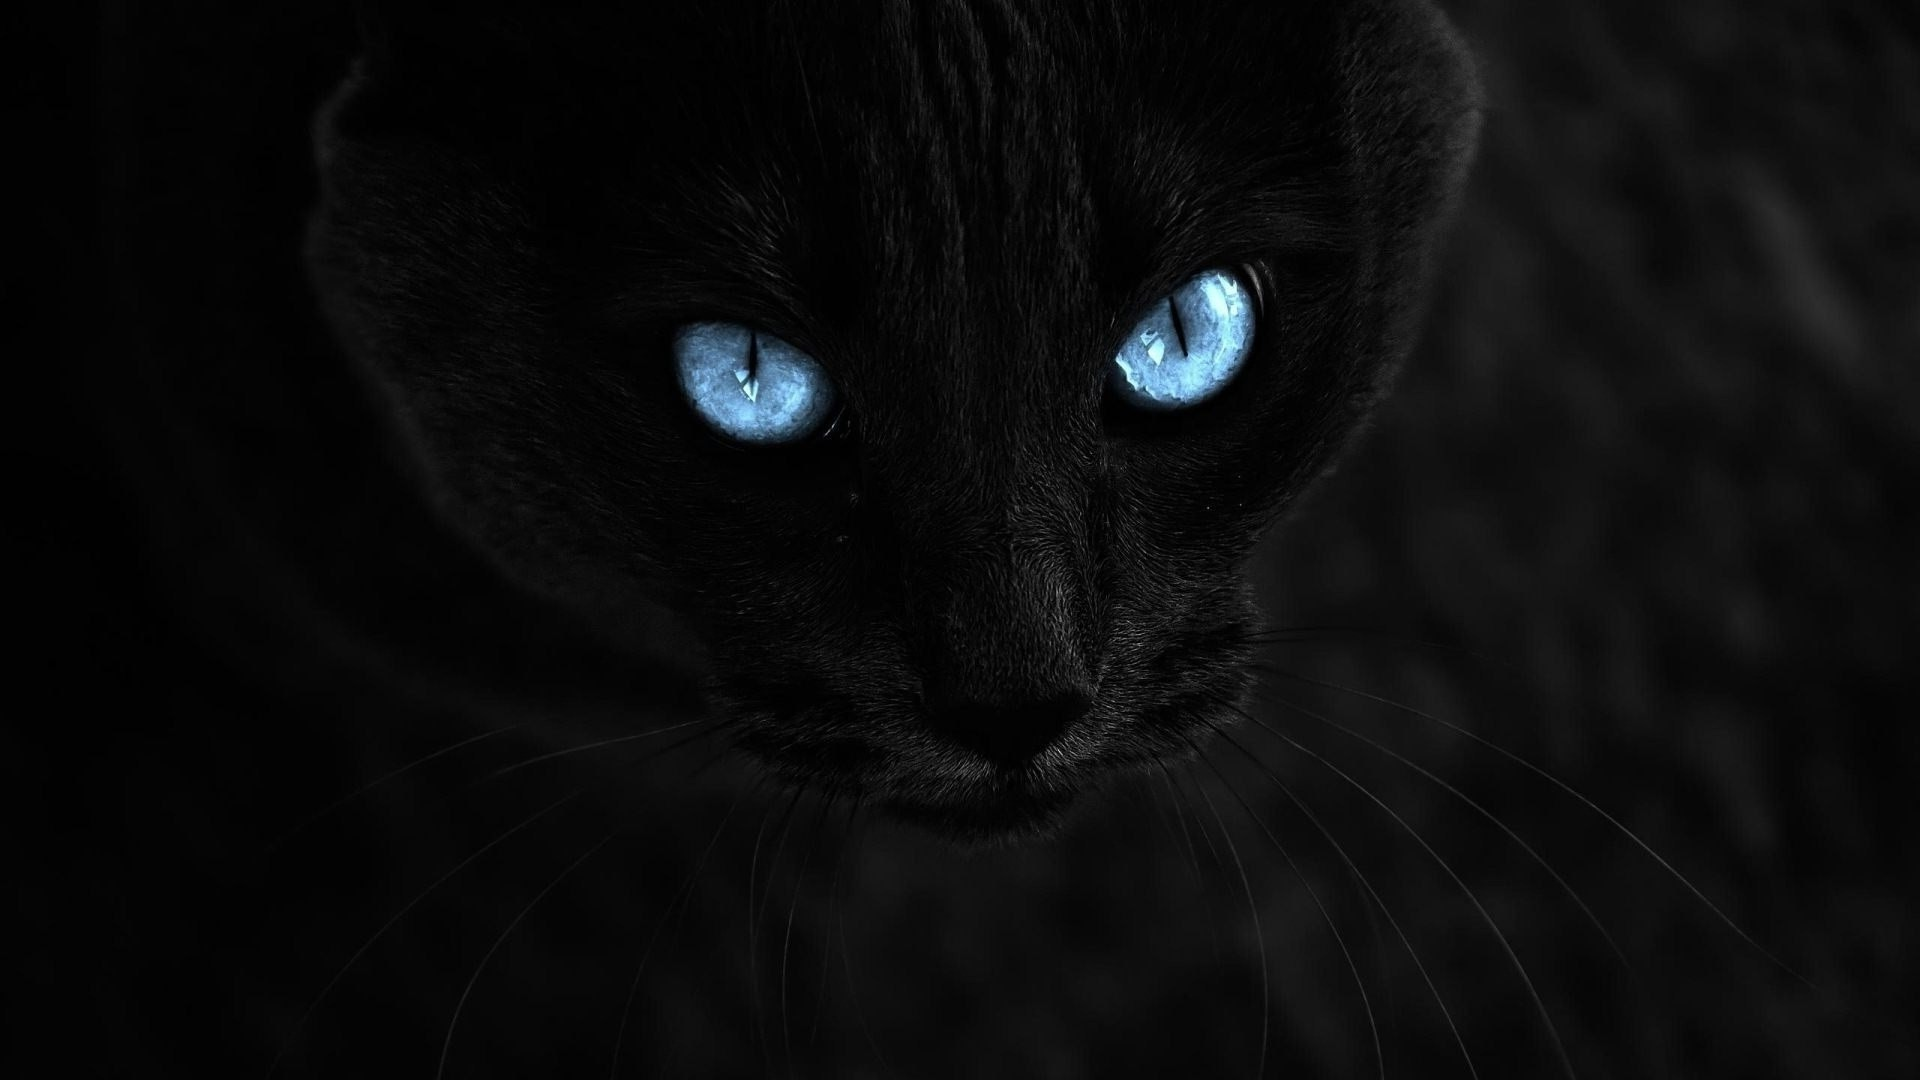 Hd Cat Wallpapers 1920x1080 69 Images: Black Cat Eyes Wallpaper (69+ Images